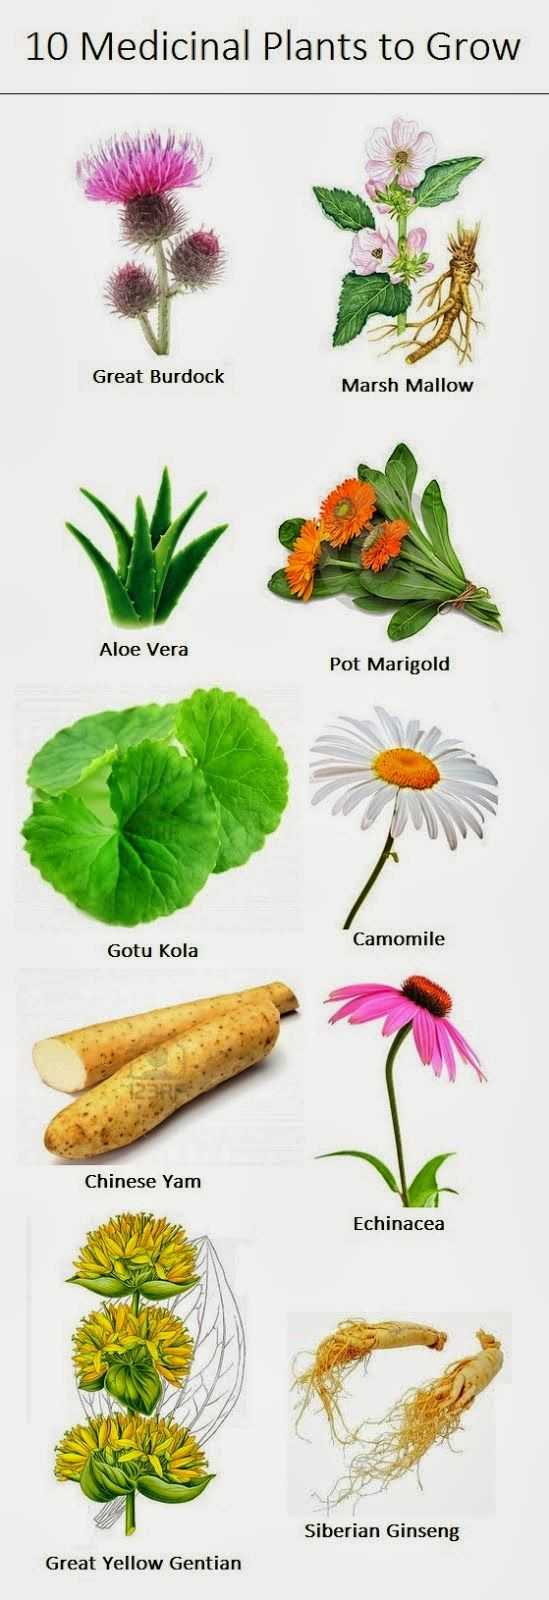 Medicinal Plants to Grow